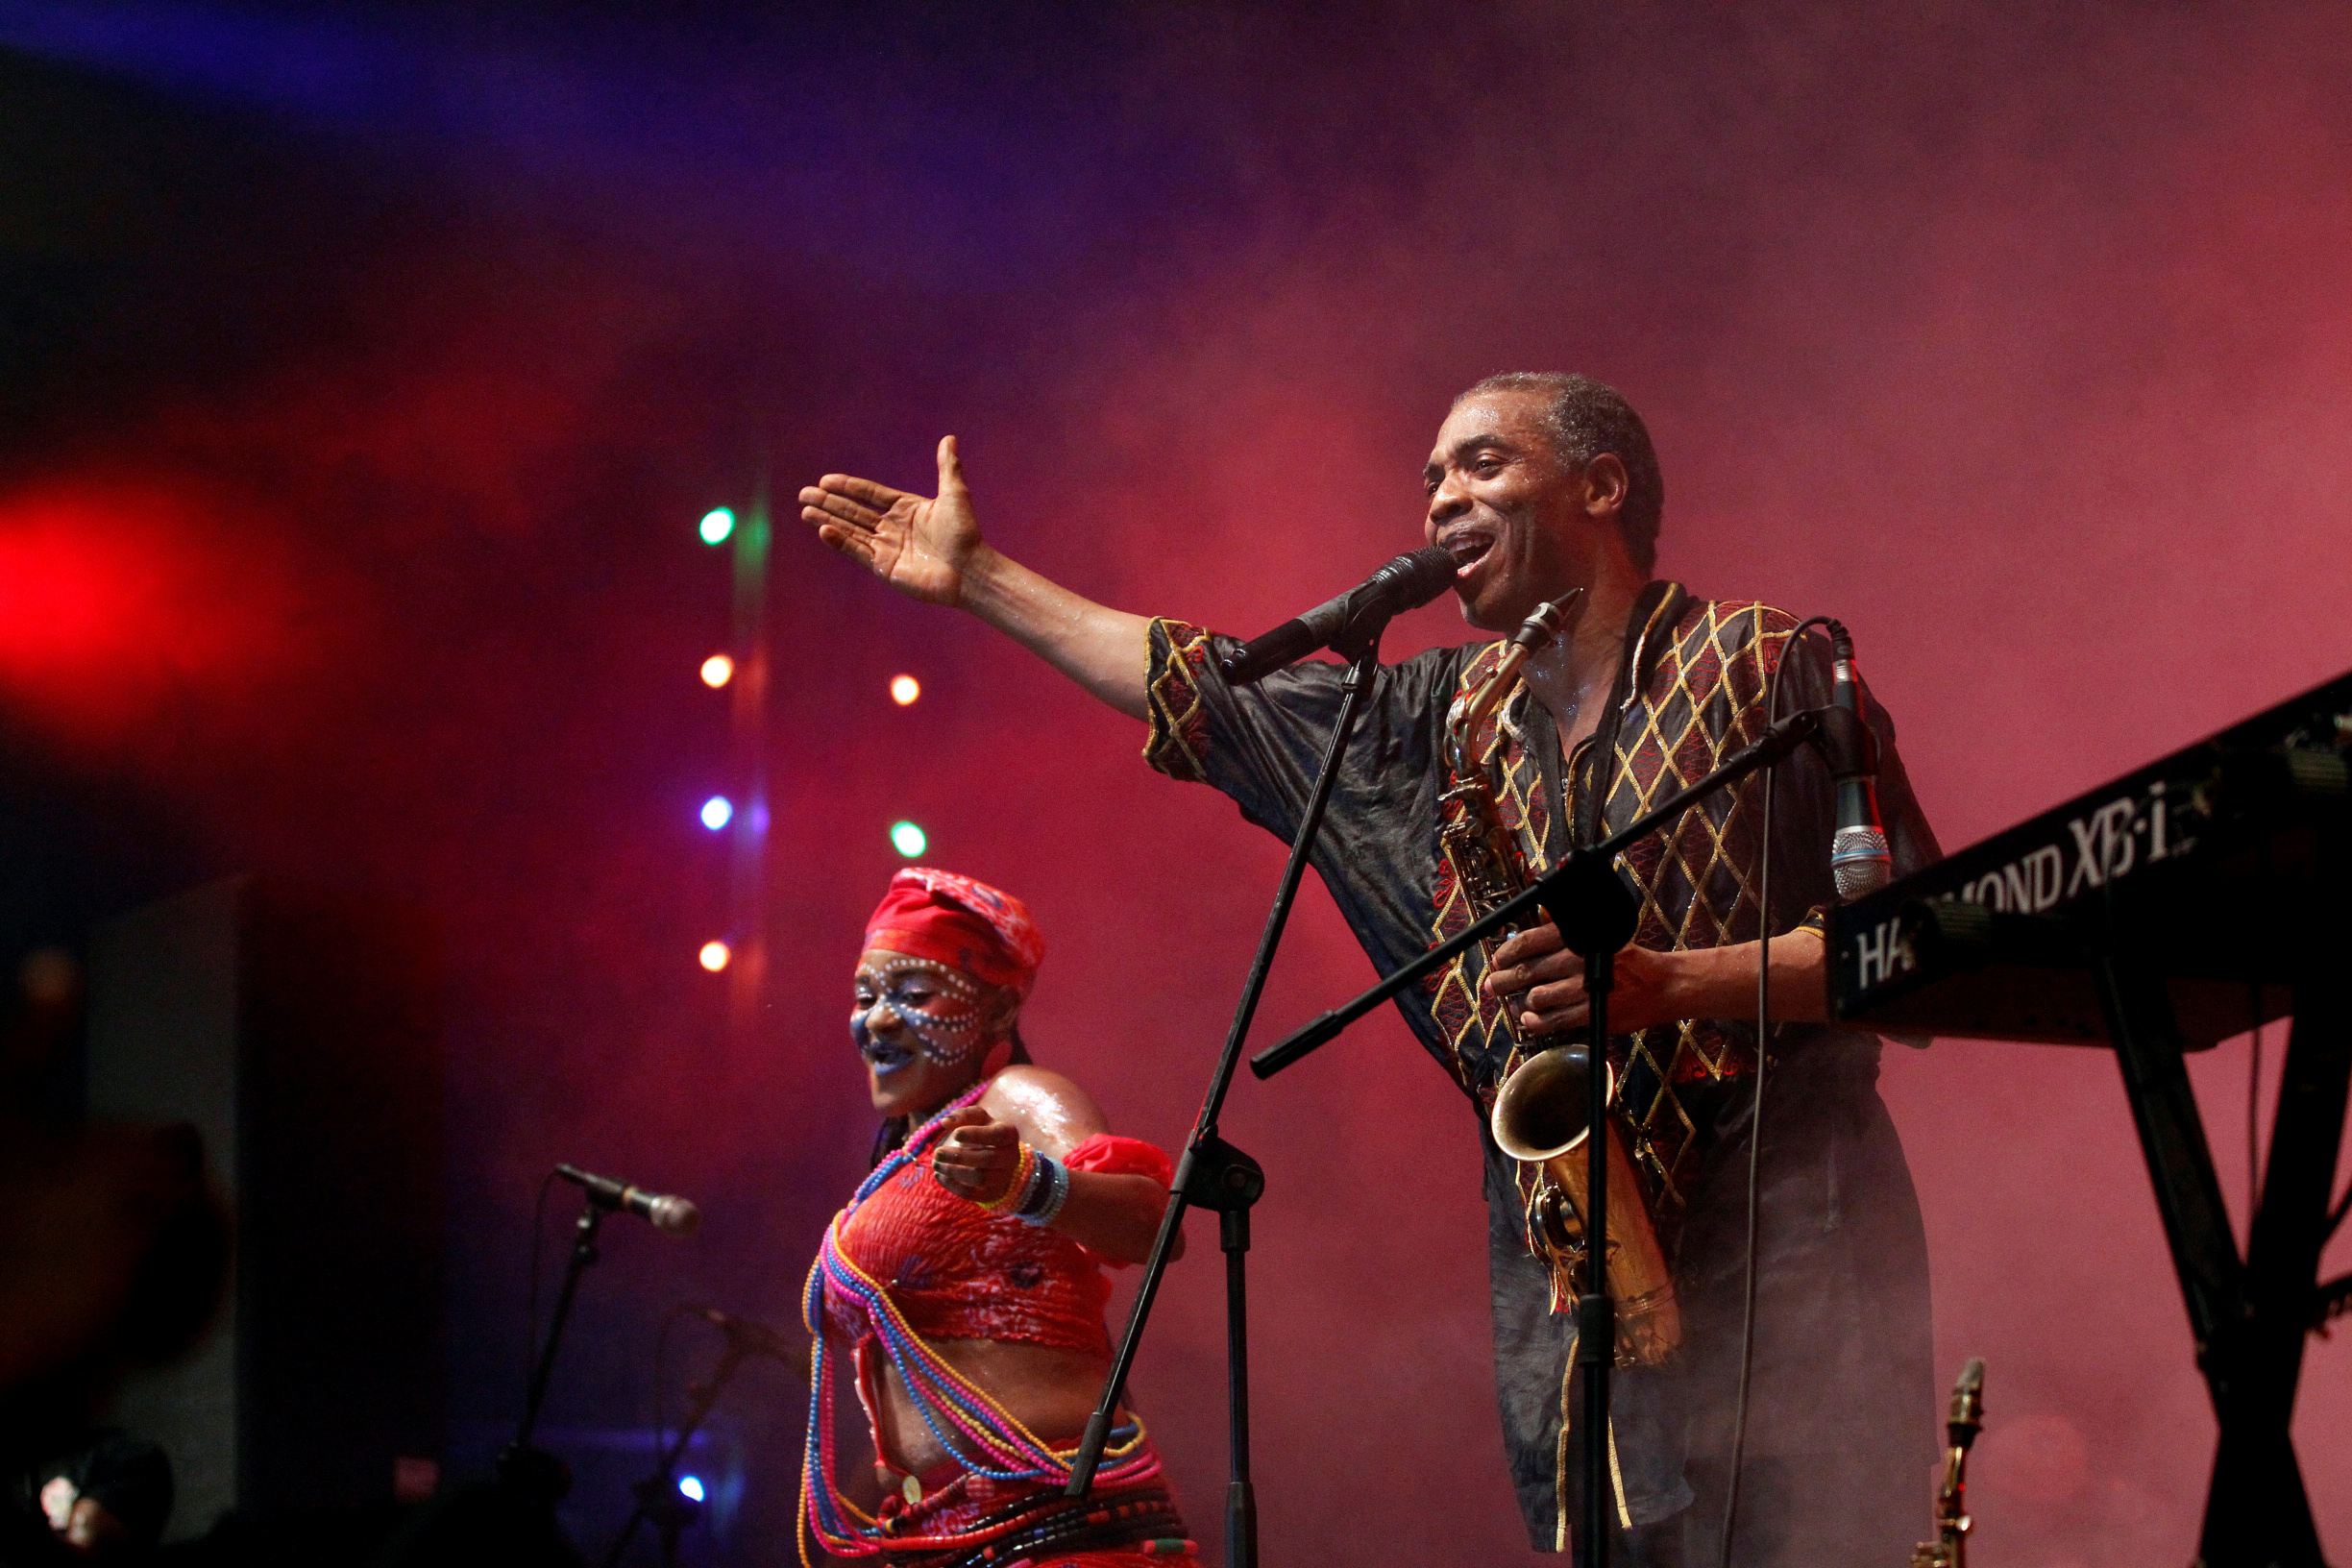 Femi Kuti performs at the annual musical celebration in honour of Nigeria's music icon Fela Kuti in Lagos in 2016.